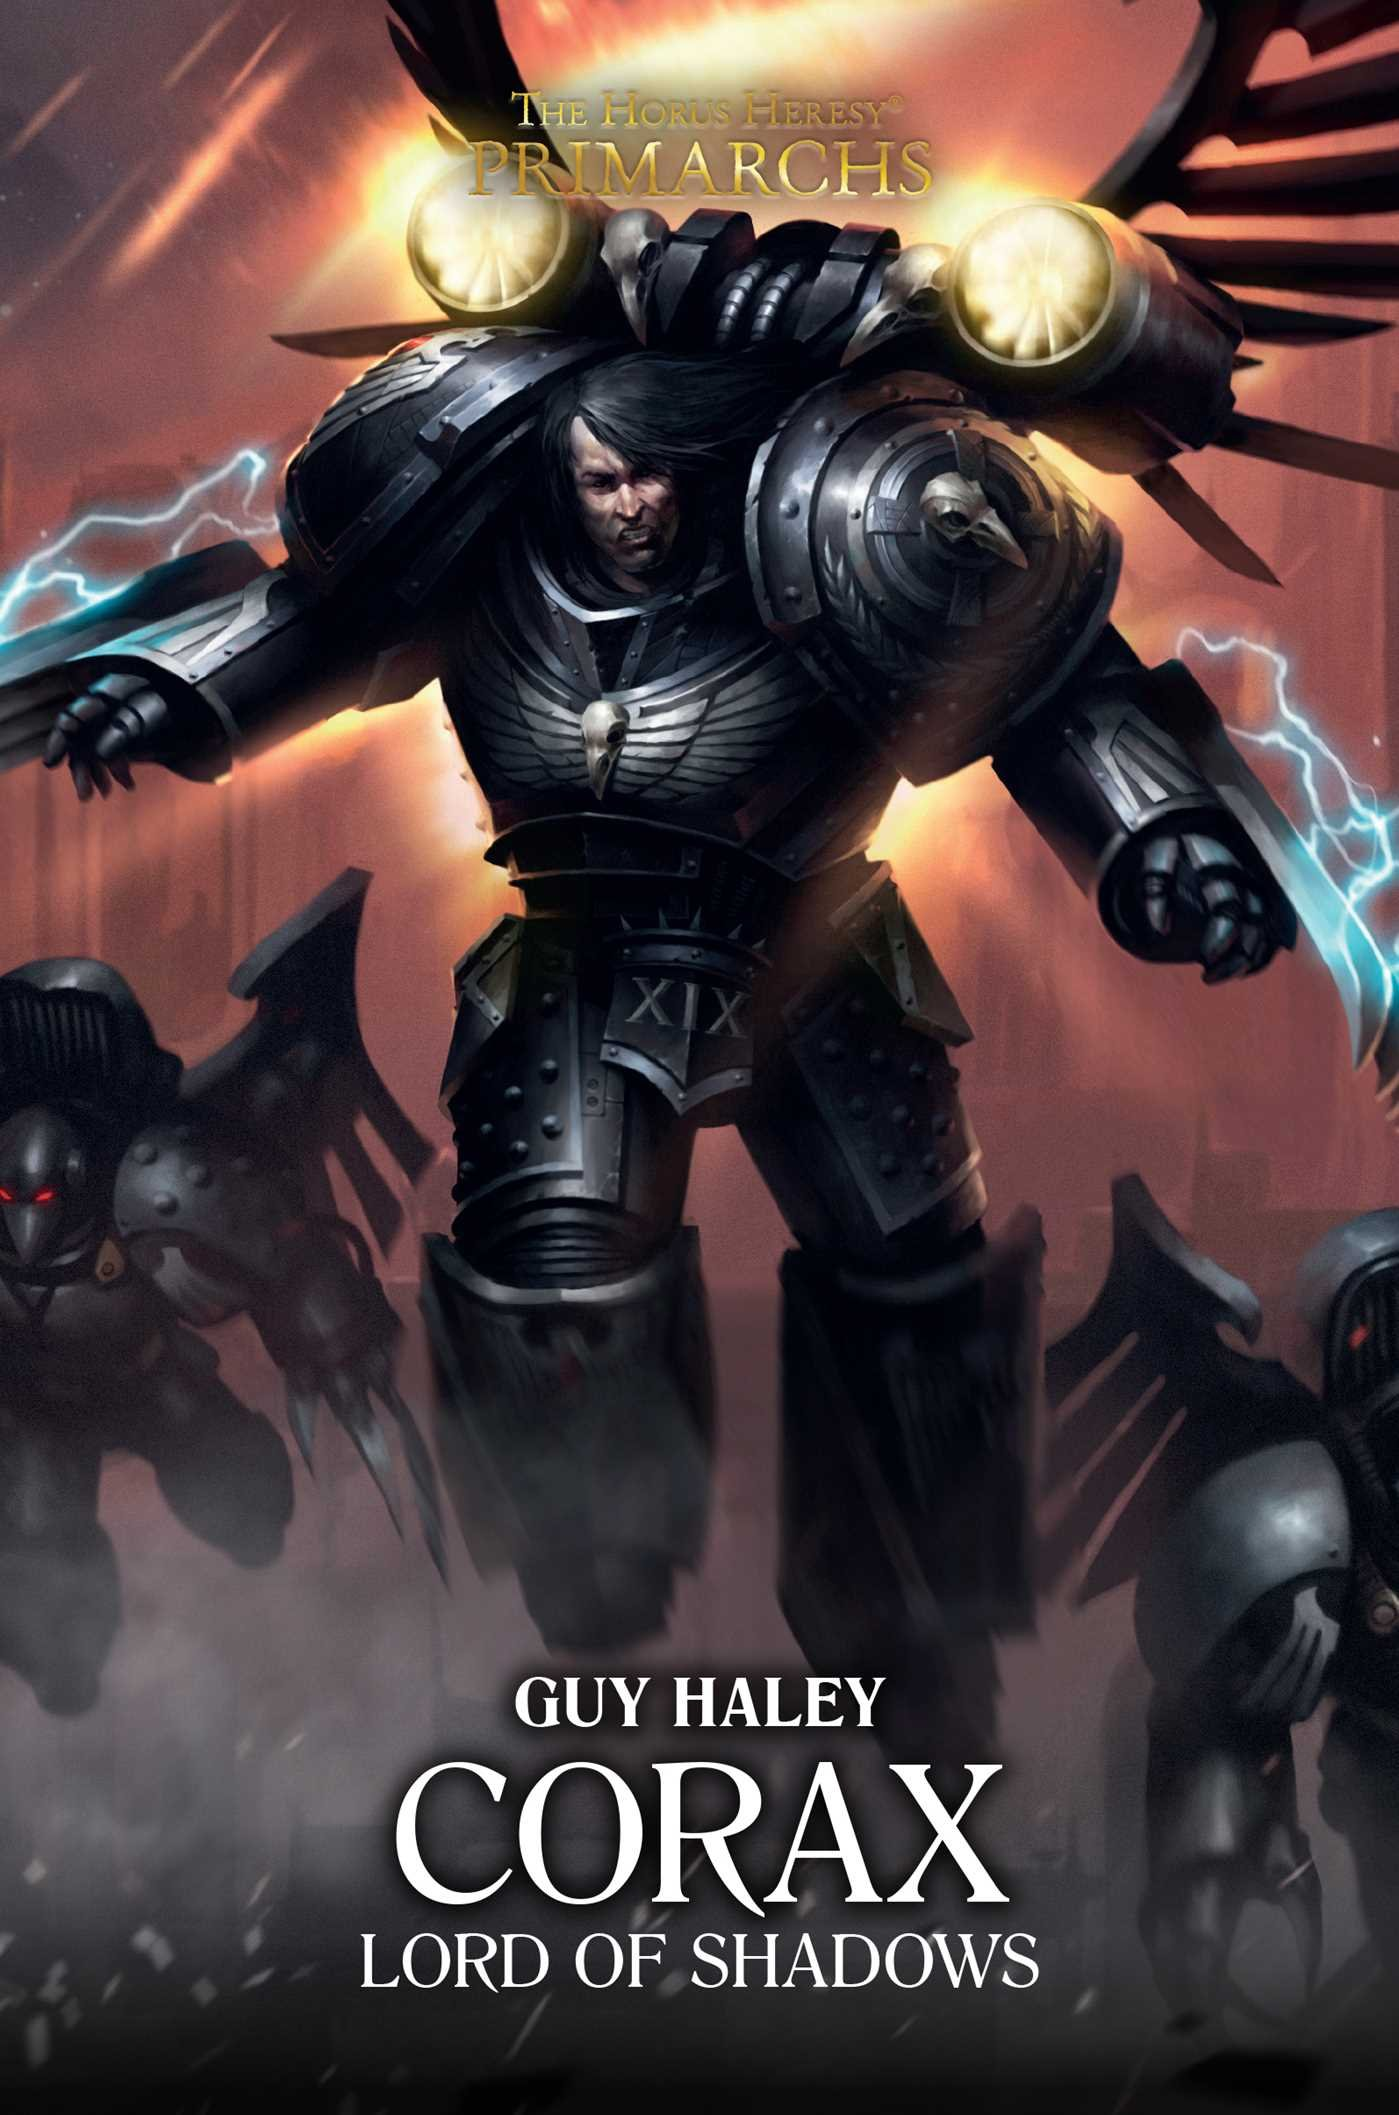 Corax Lord of Shadows, a novel by Guy Haley